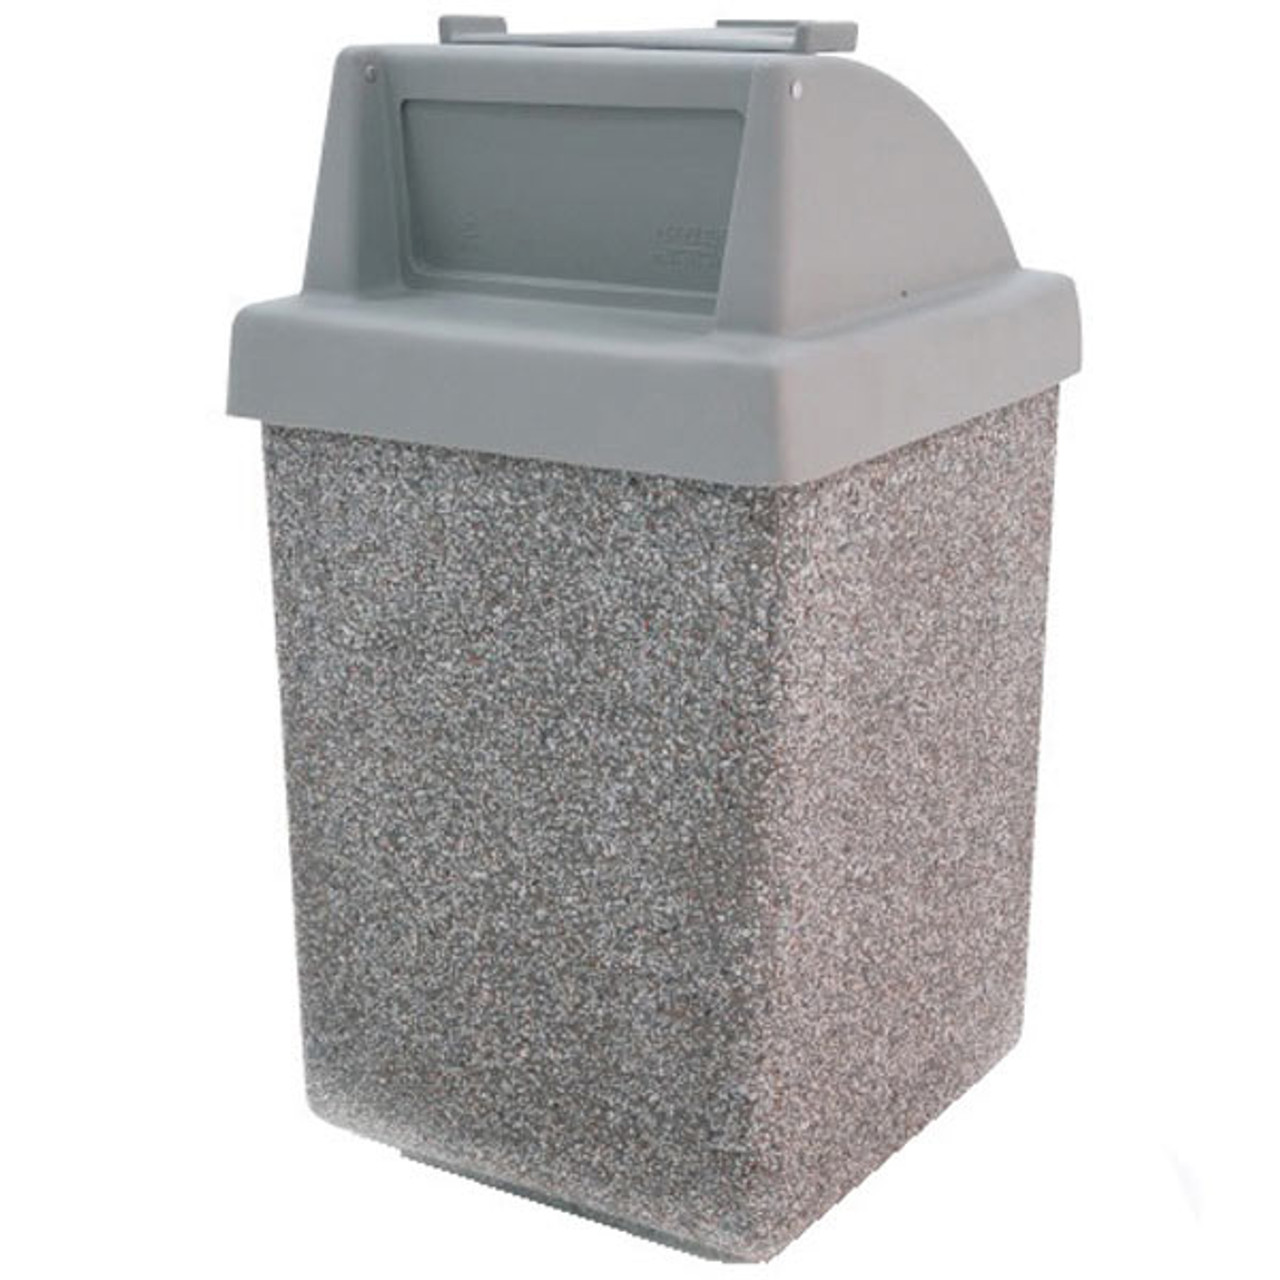 53 Gallon Restaurant Trash Can with Tray Holder TF1035 Exposed